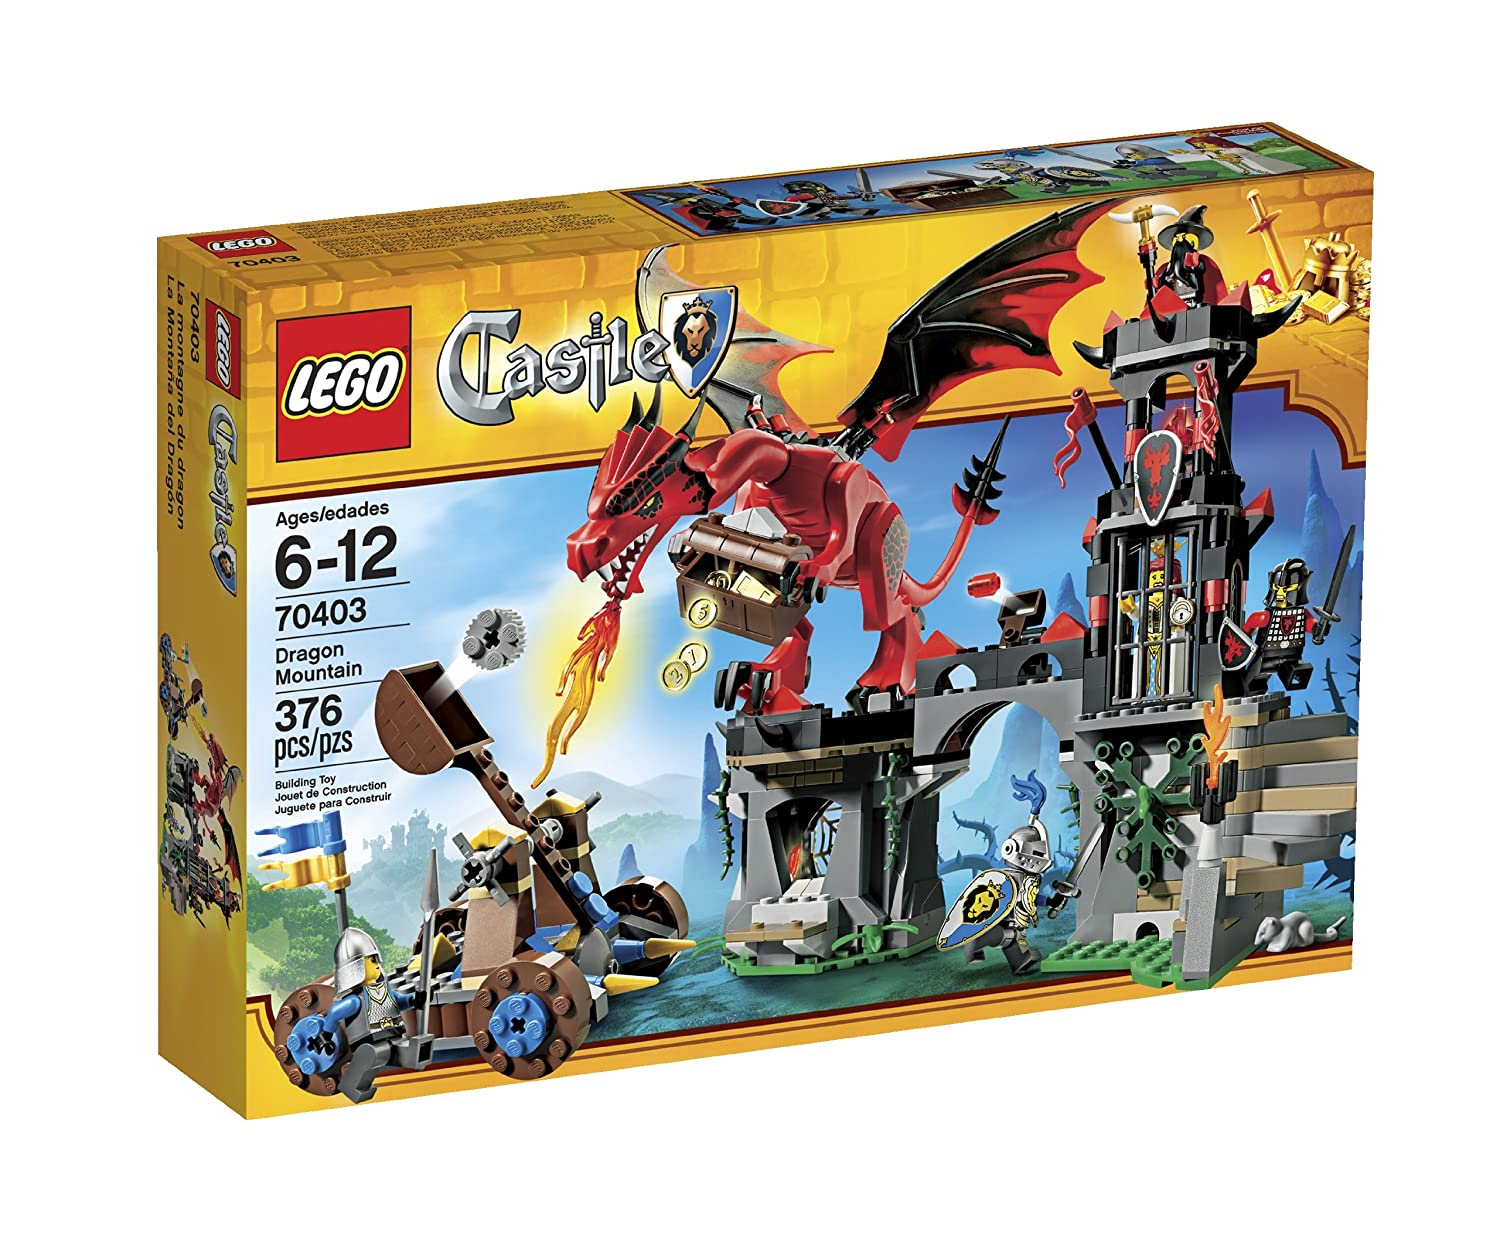 Lego Castle Dragon Mountain – 70403 $32.99